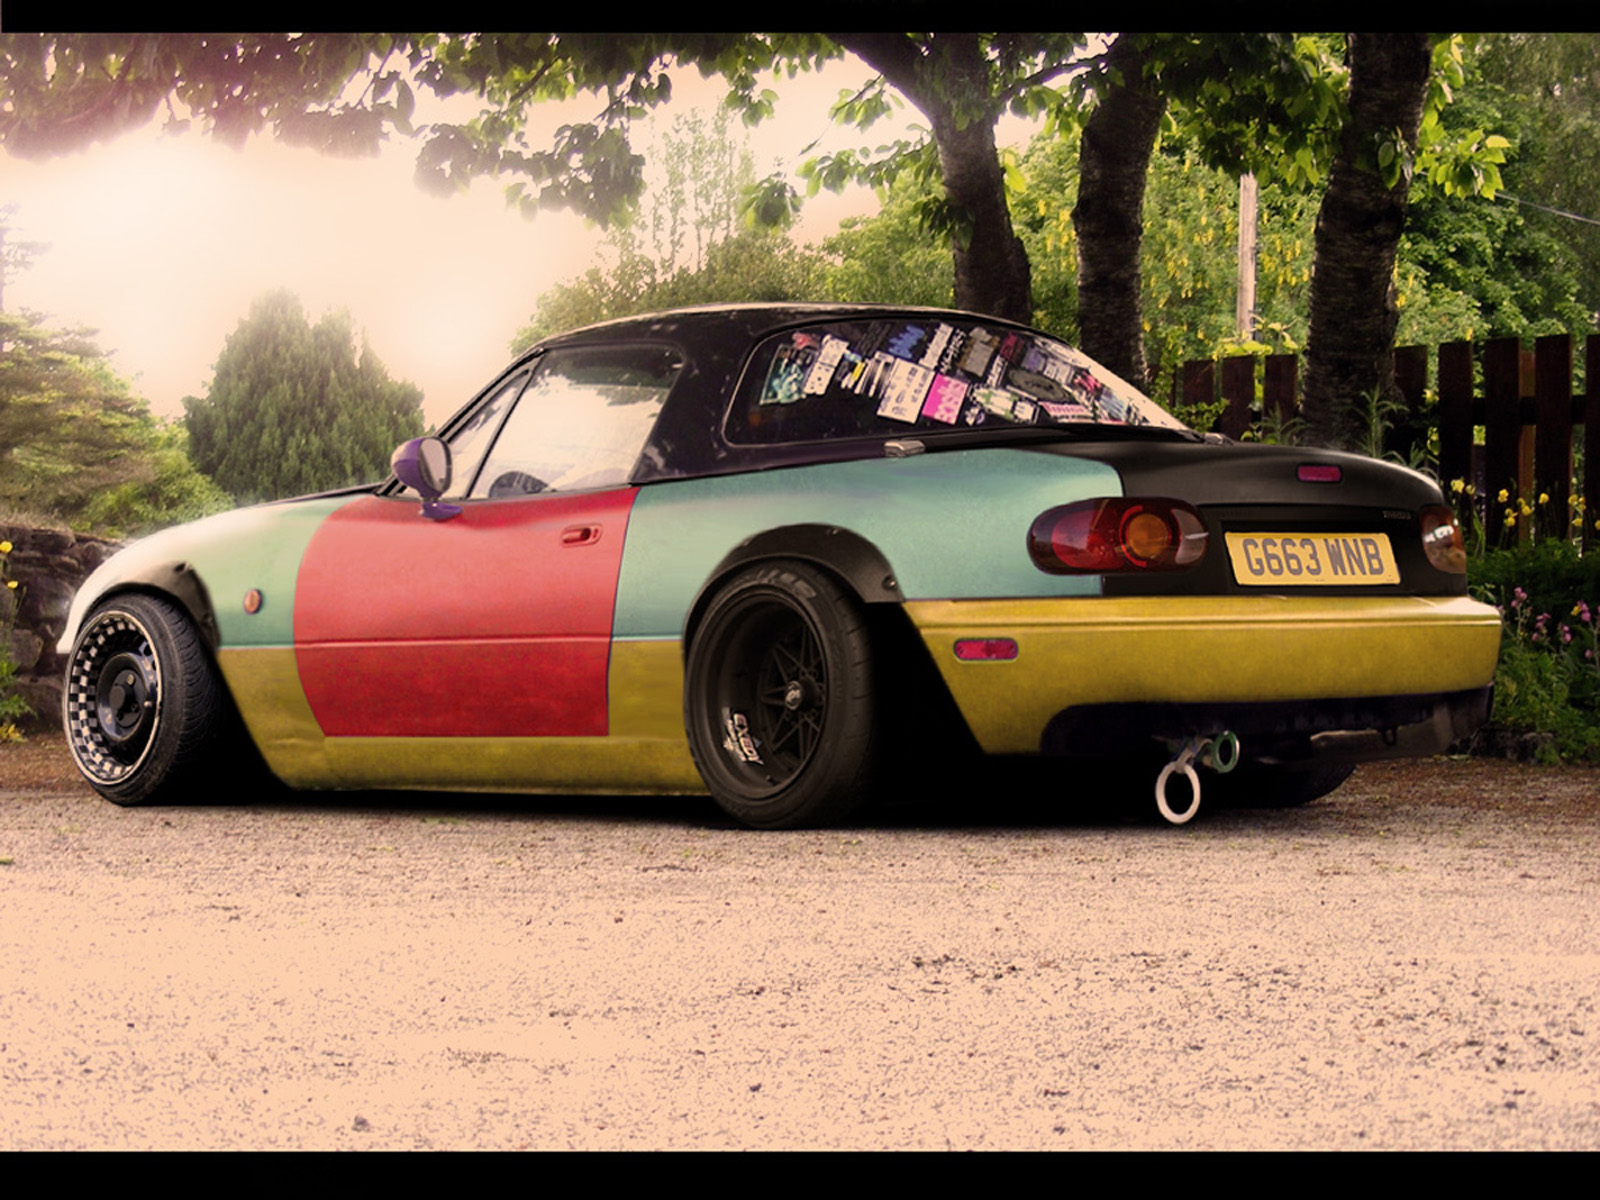 [Image: Mazda_MX-5_by_busterdesign.jpg]